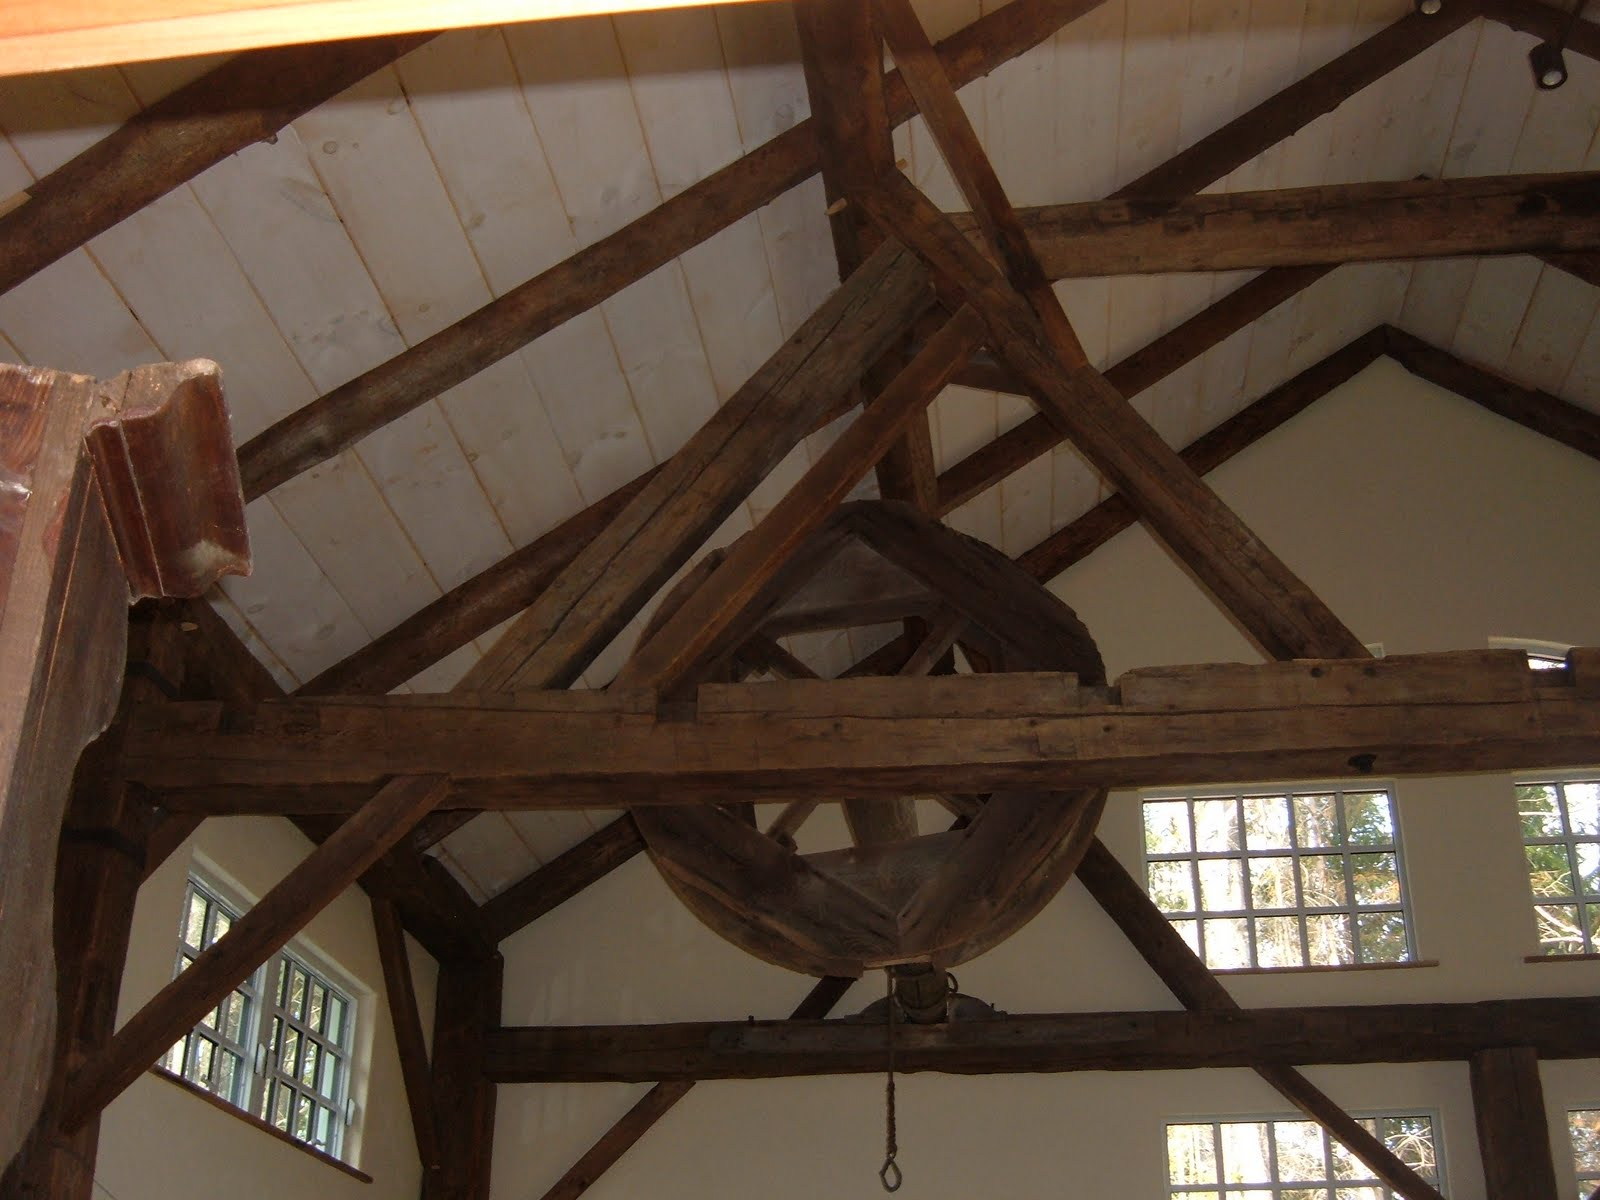 The carcass wheel was an original feature of this barn.